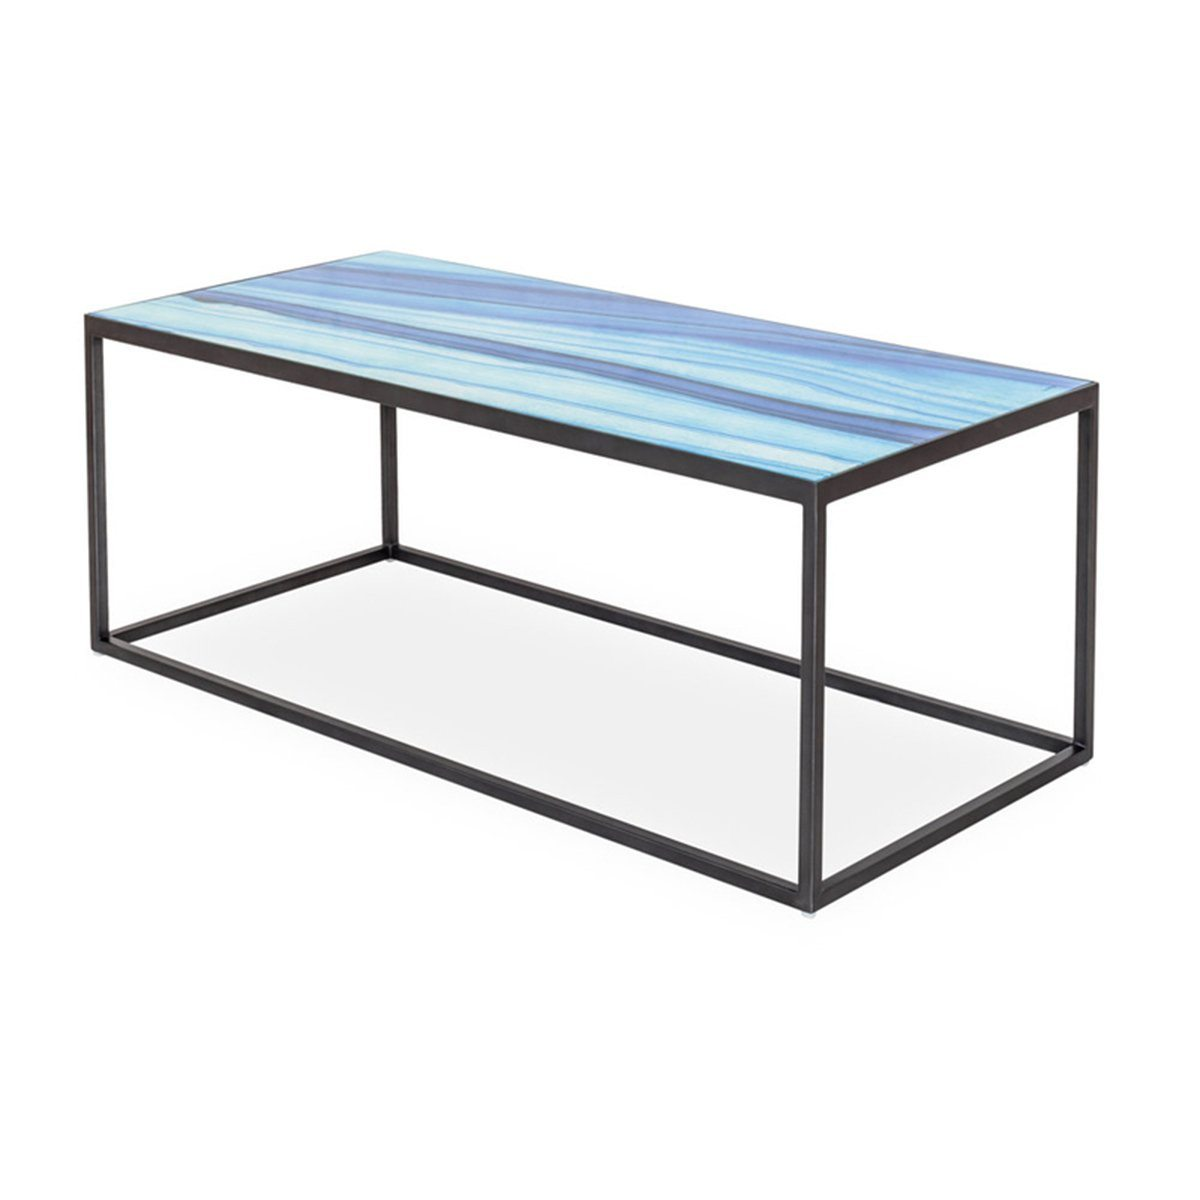 more high alexis gloss white black views coffee furniturebox table modern and glass